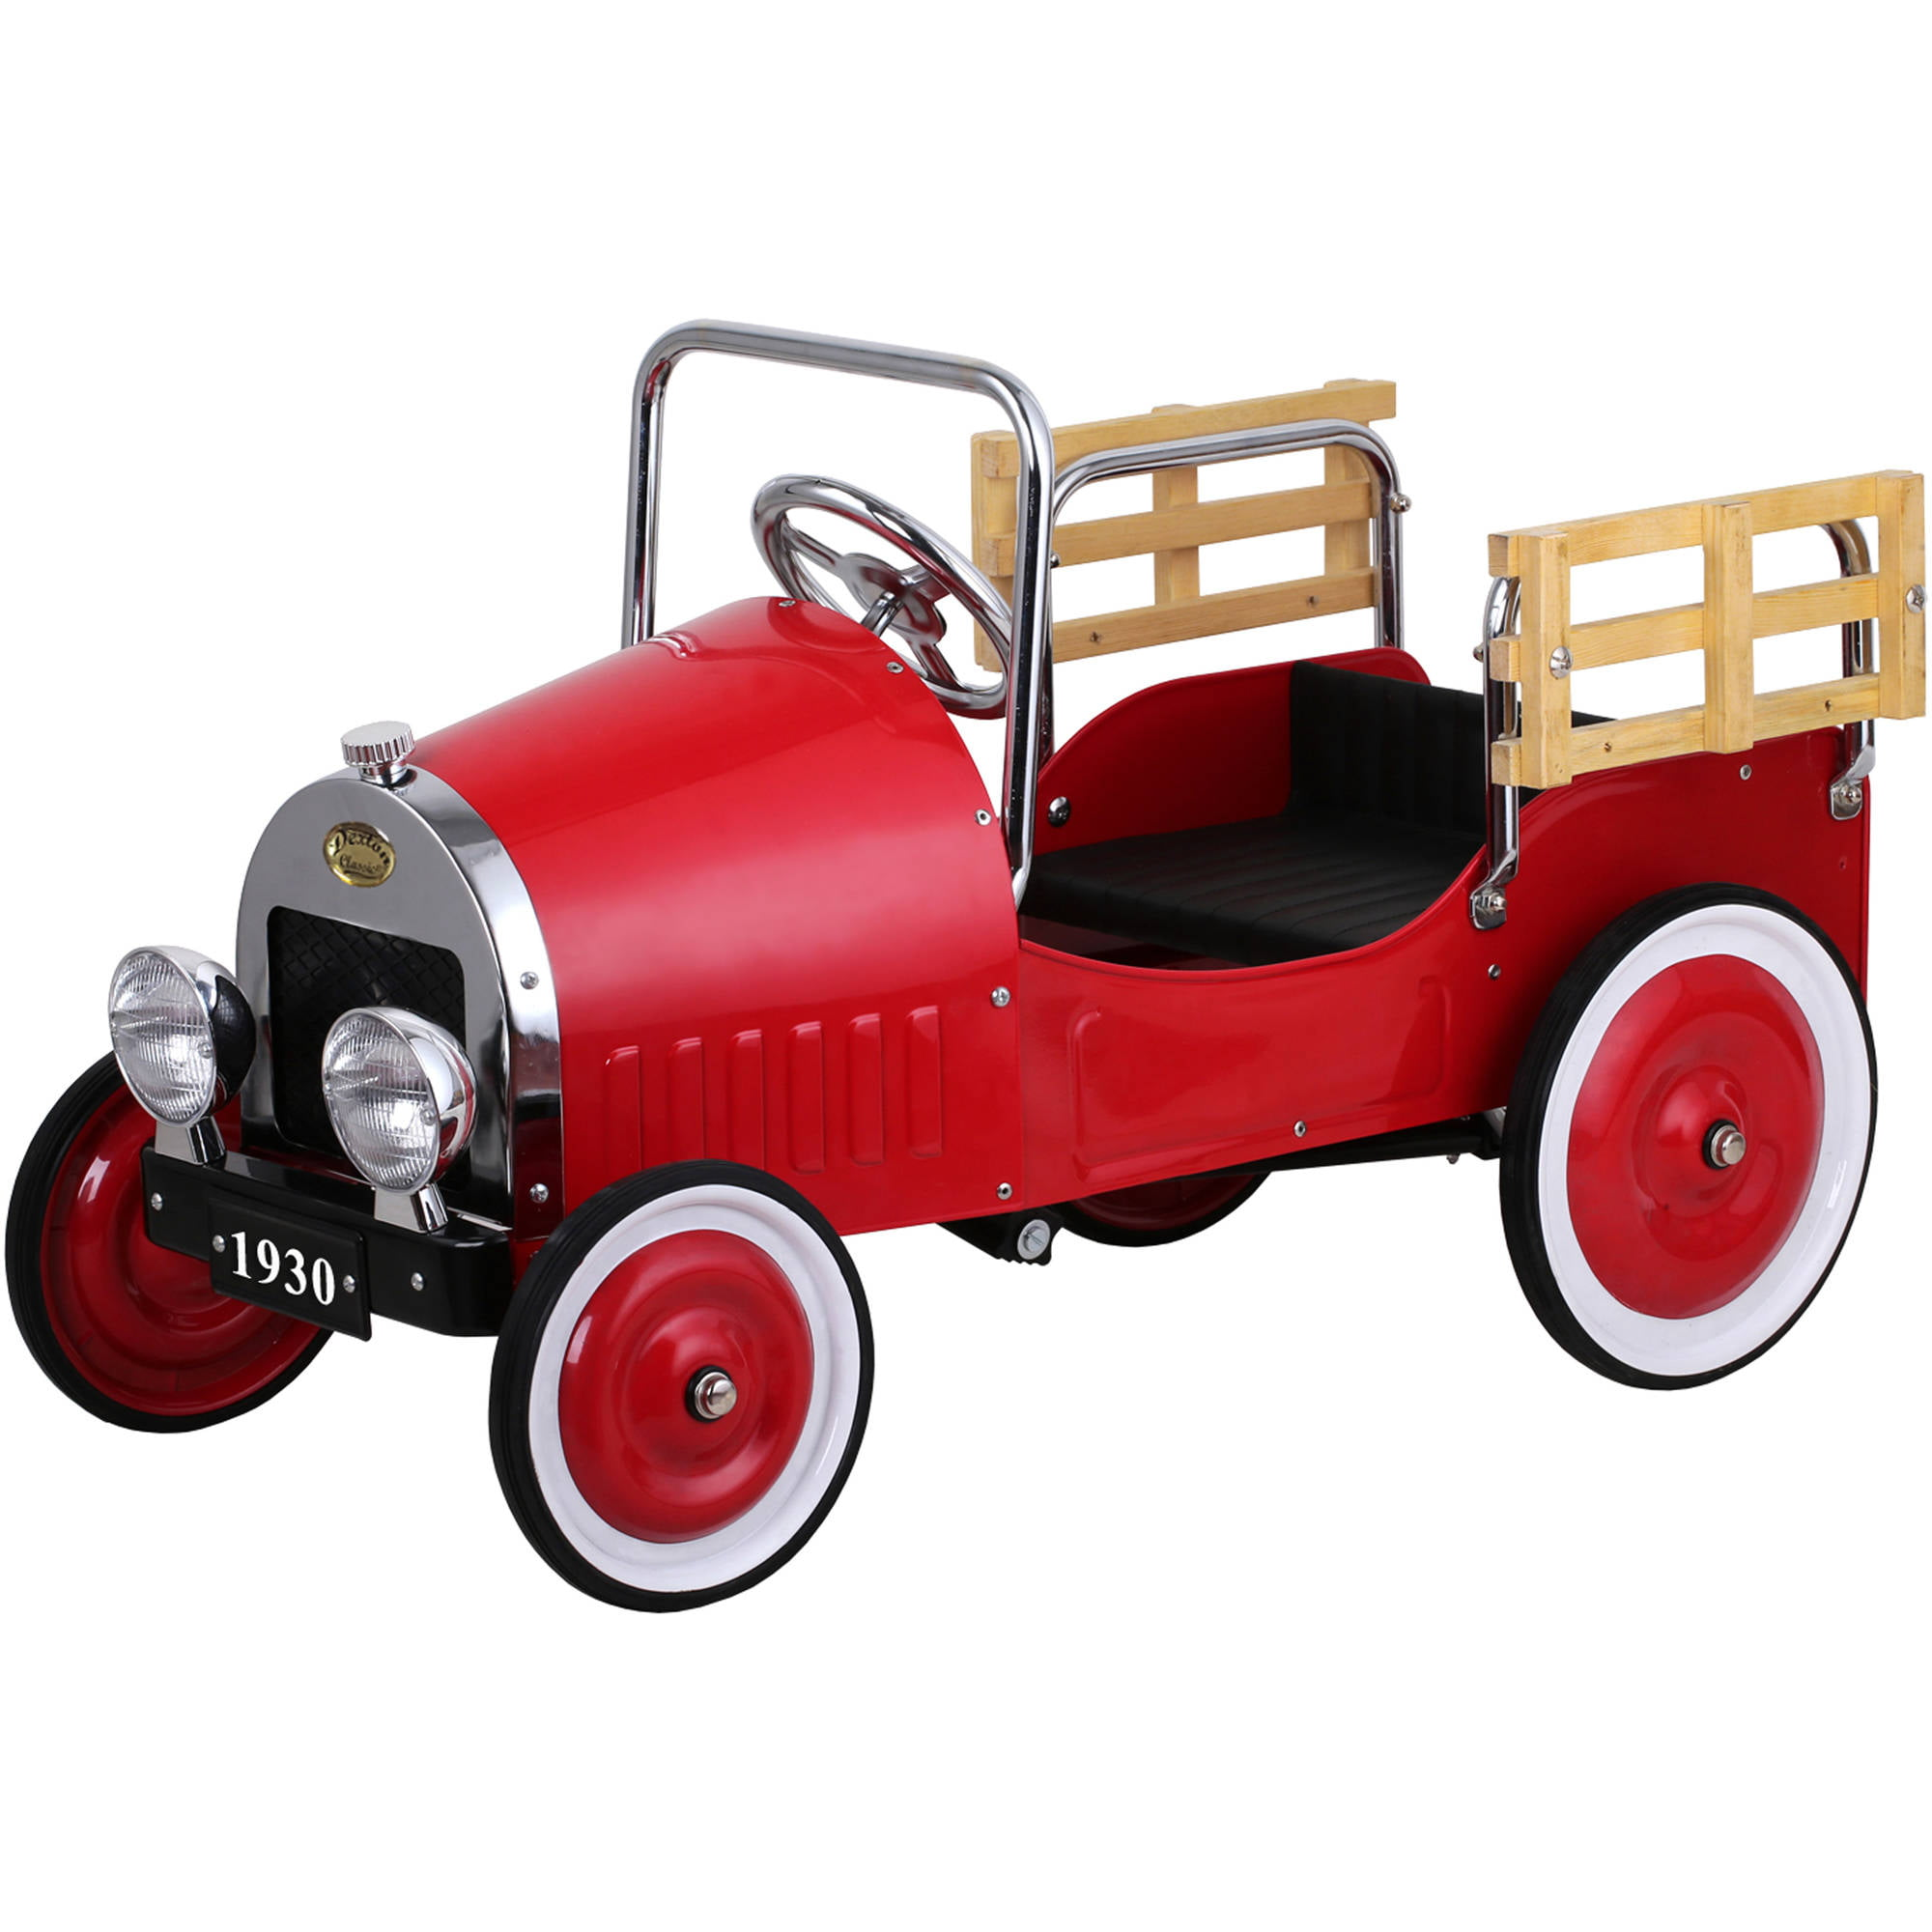 Retro Pickup Truck Pedal Car, Red by Dexton